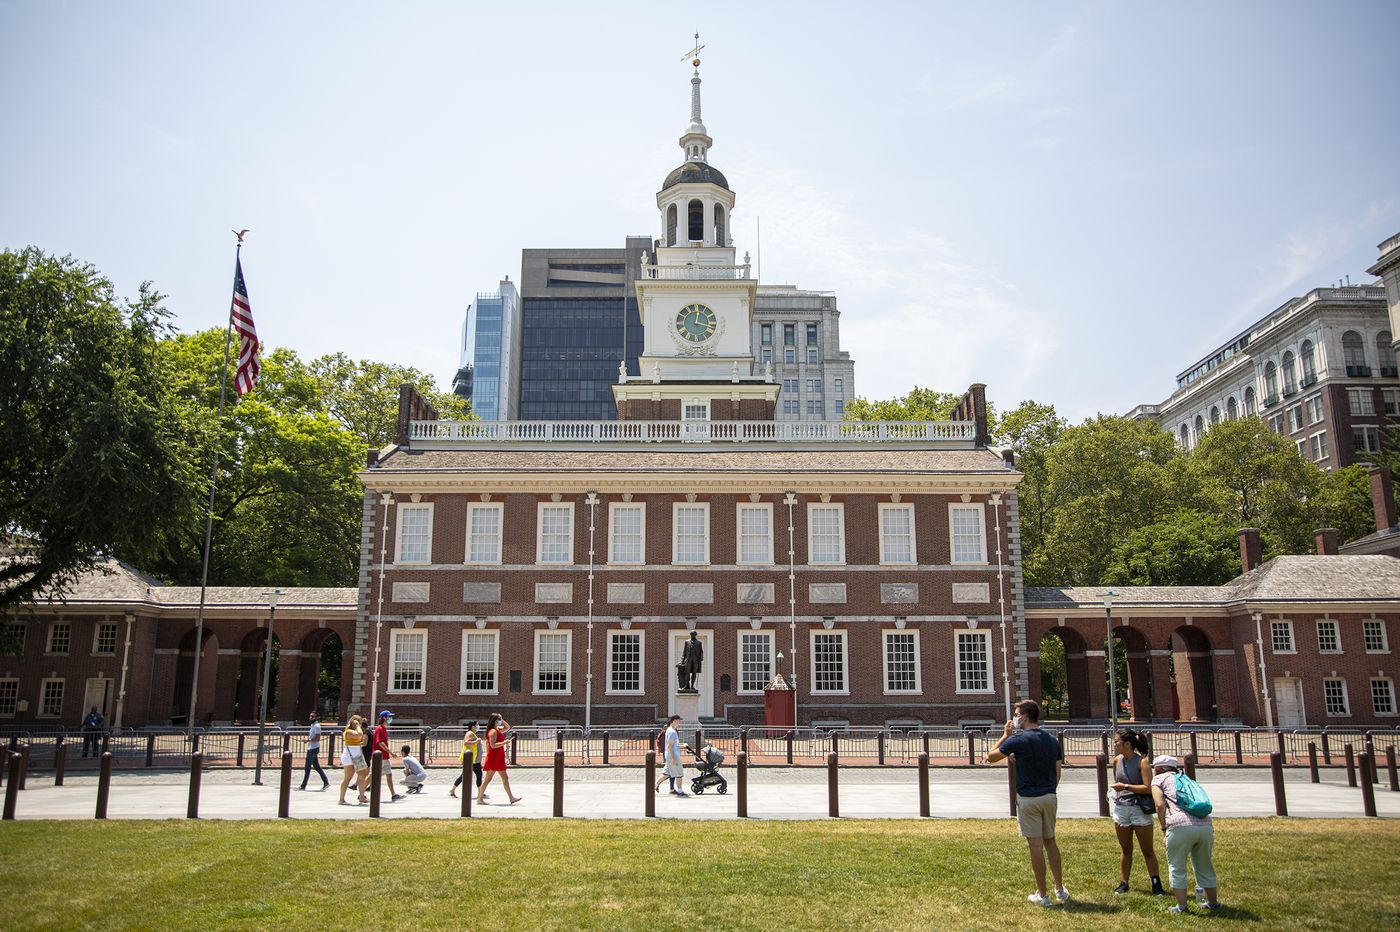 A quiet, sweaty start to the July 4th weekend in Philly